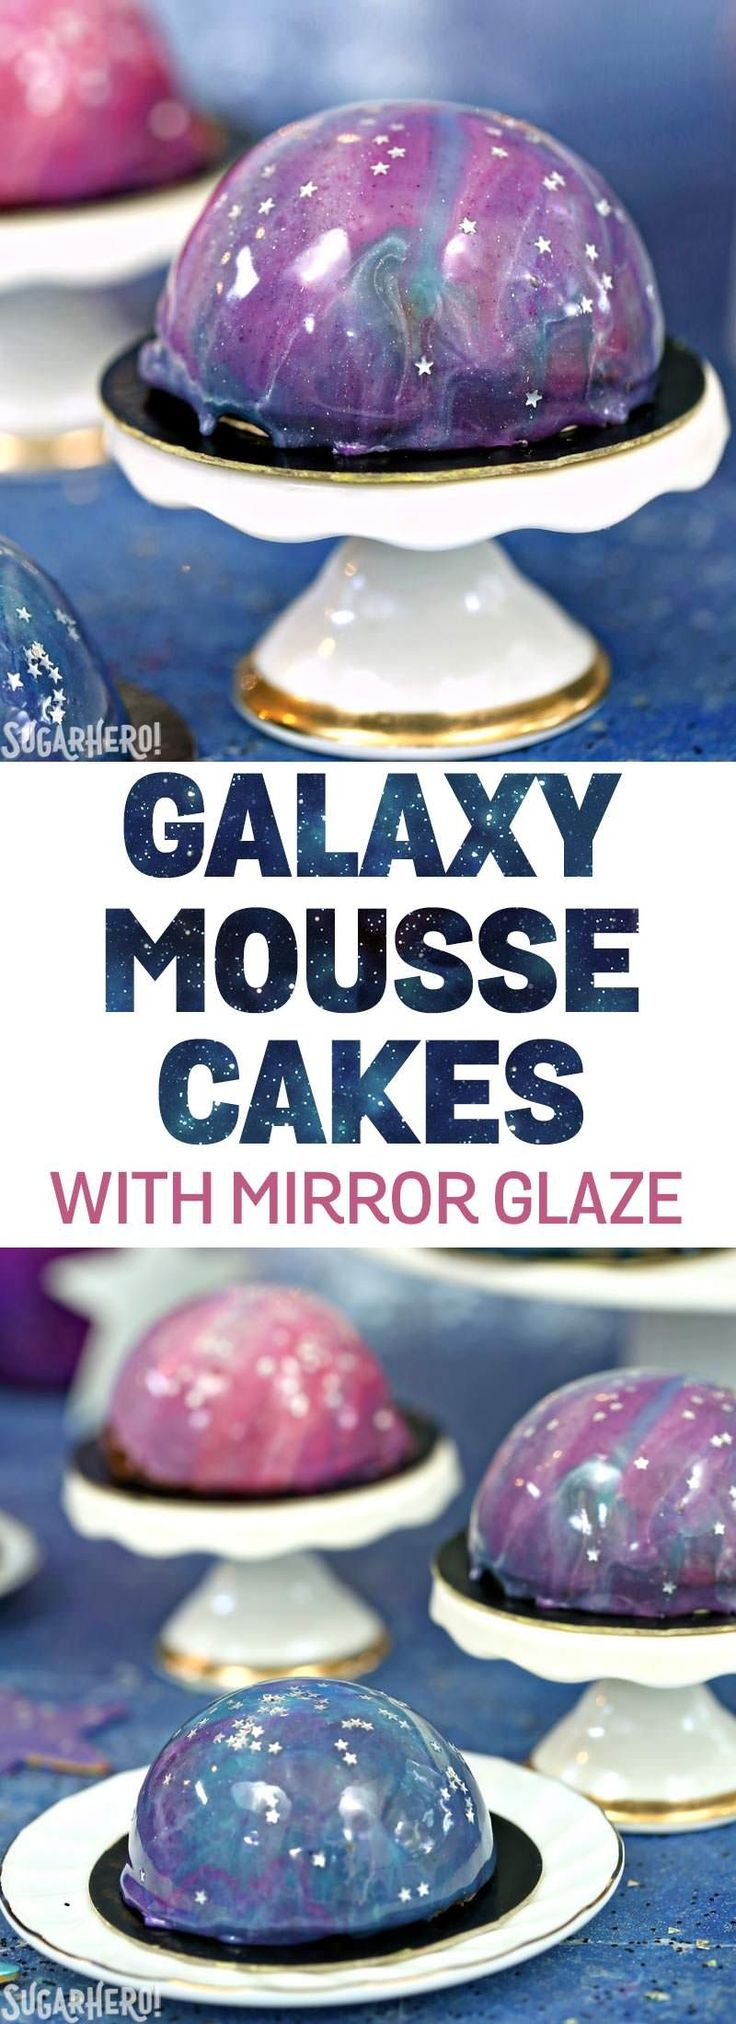 Galaxy Mousse Cakes - mini chocolate mousse cakes on a brownie, with a gorgeous galaxy mirror glaze on top! Made in partnership with @InDelight | From SugarHero.com #ad #creamernation